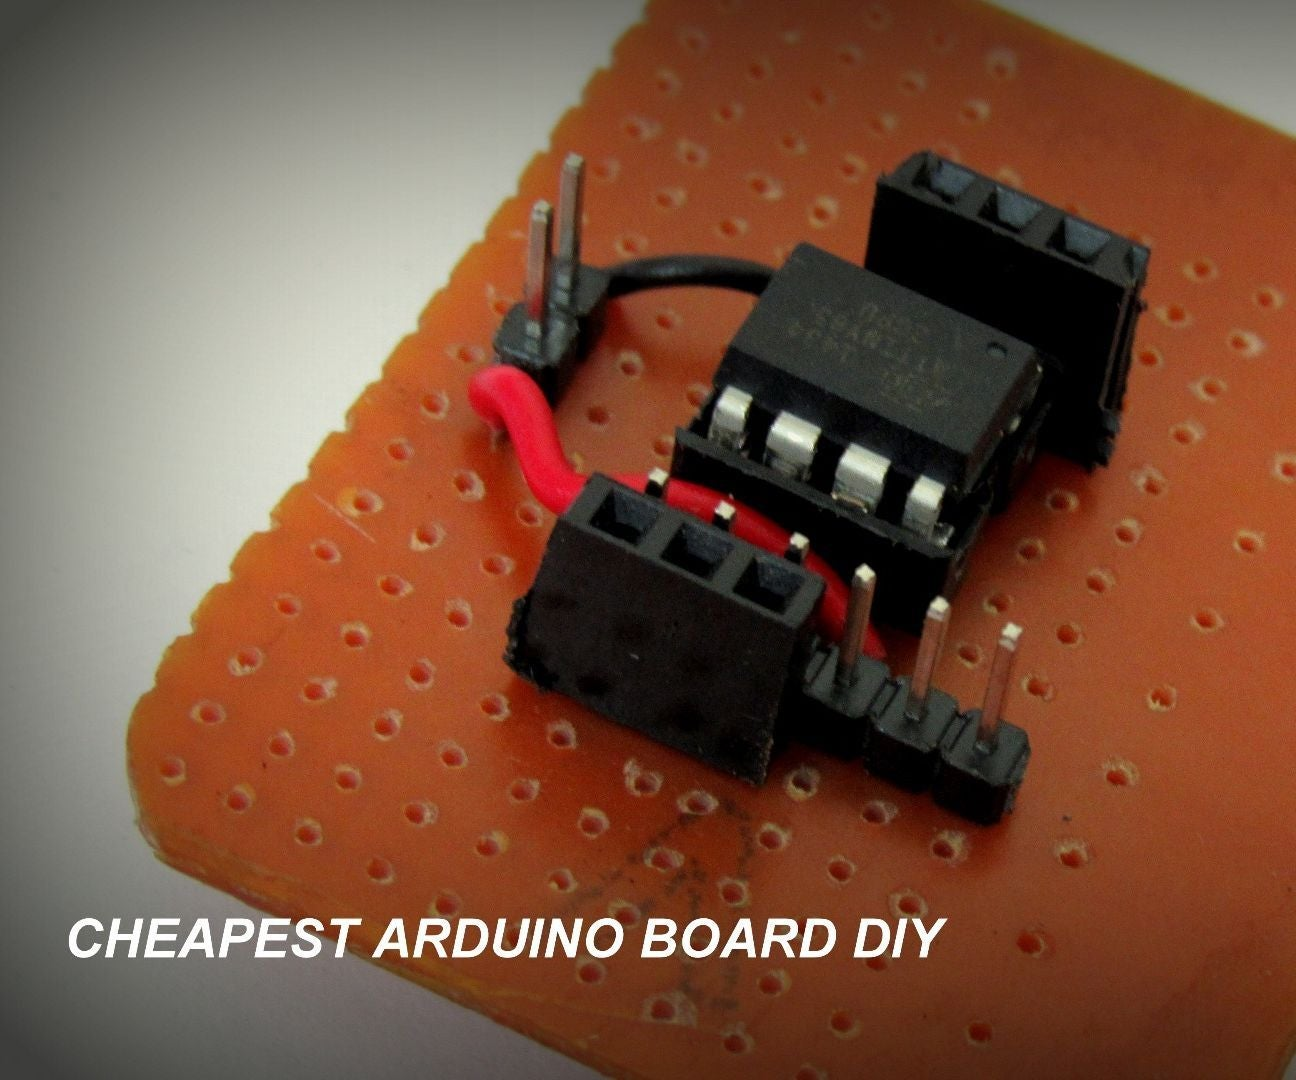 Arduino On Flipboard By Aliprahmanu Solar Charging Usb Mobile Charger Circuit Diagram Engineersgarage How To Make A Cheap Attiny Board